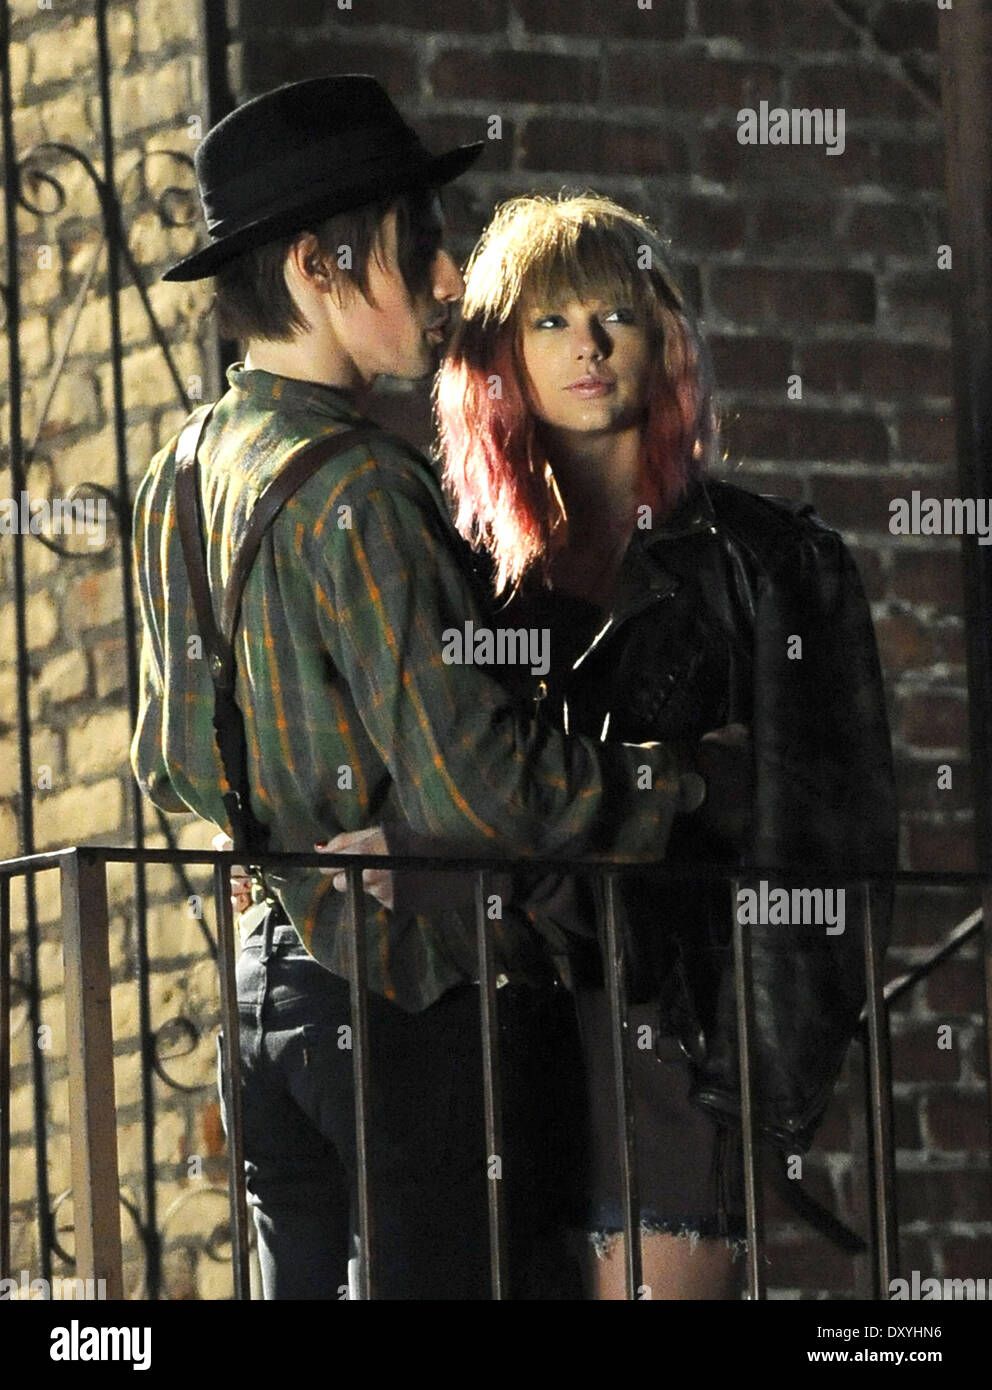 Taylor Swift On The Set Of Her New Video I Knew You Were Trouble In Stock Photo Alamy